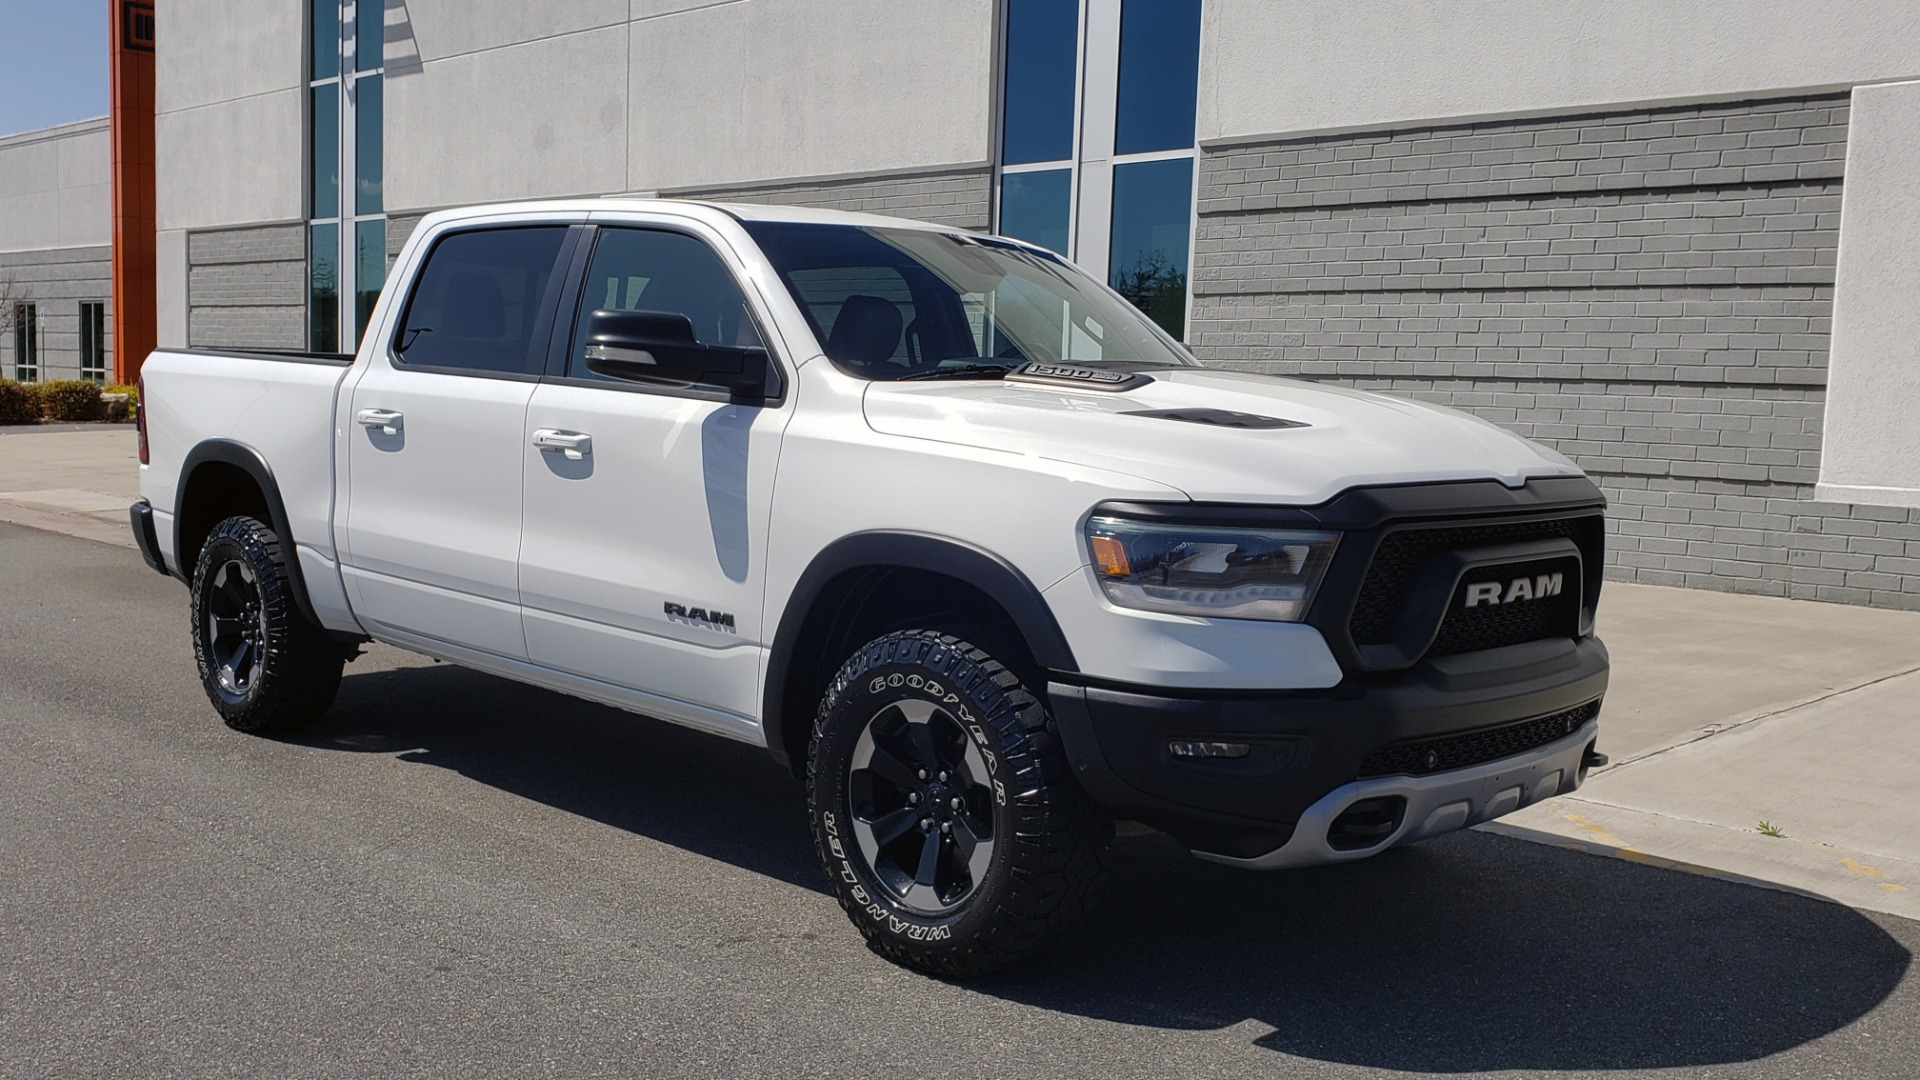 Used 2019 Ram 1500 REBEL CREWCAB 4X4 / 5.7L V8 HEMI / 8-SPD AUTO / REARVIEW for sale Sold at Formula Imports in Charlotte NC 28227 6